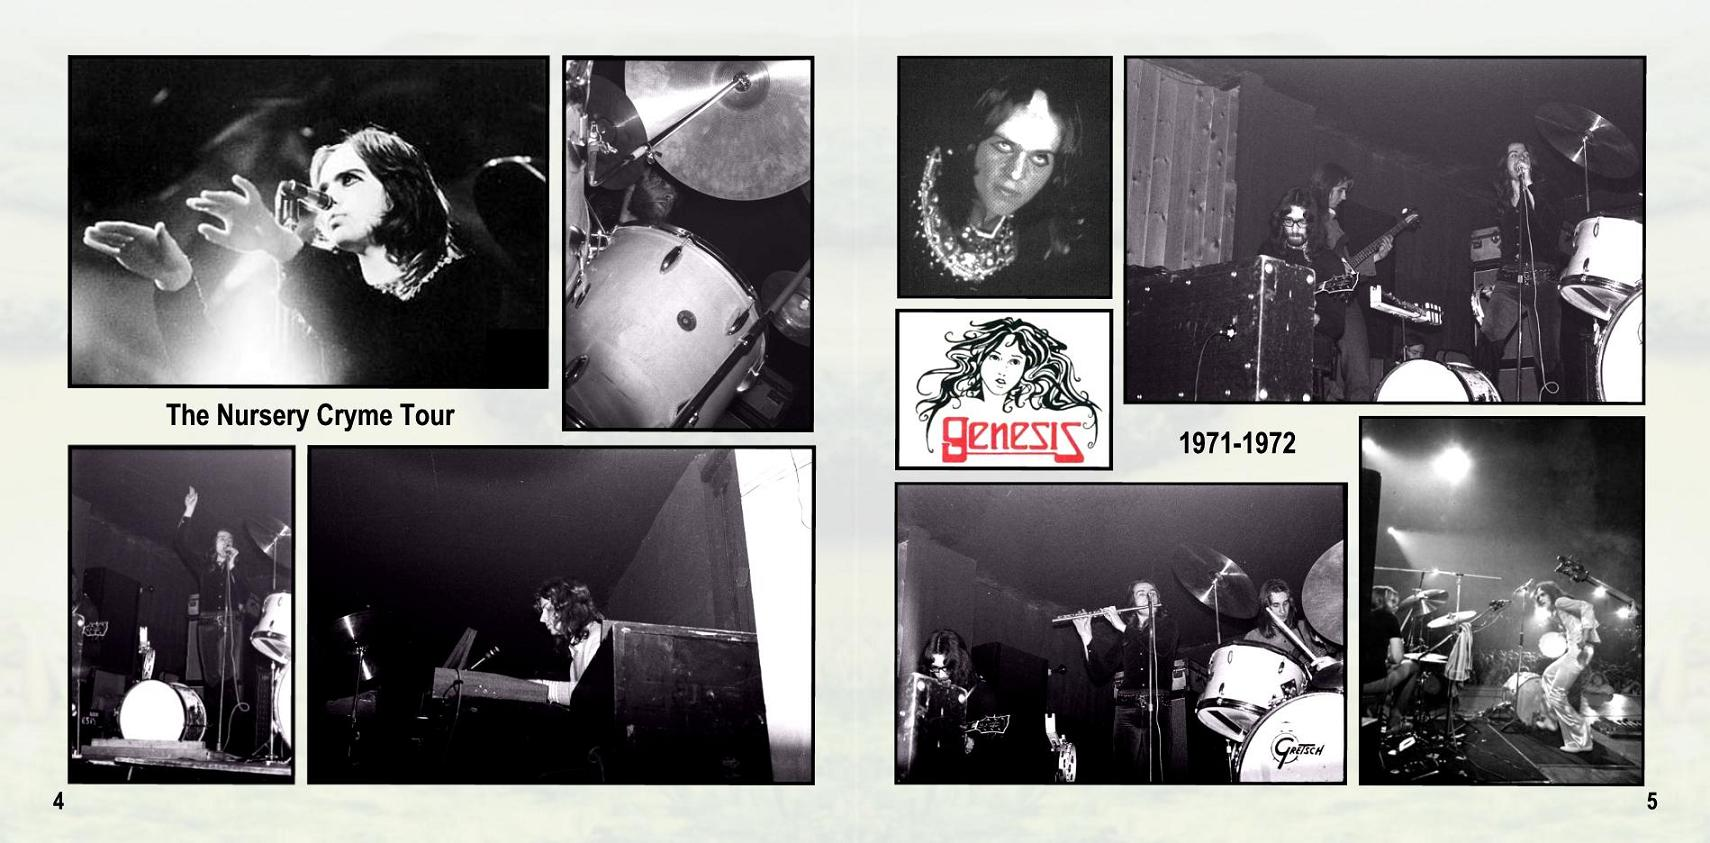 1972-03-04-CRYME_OF_PASSION-Booklet-4-5